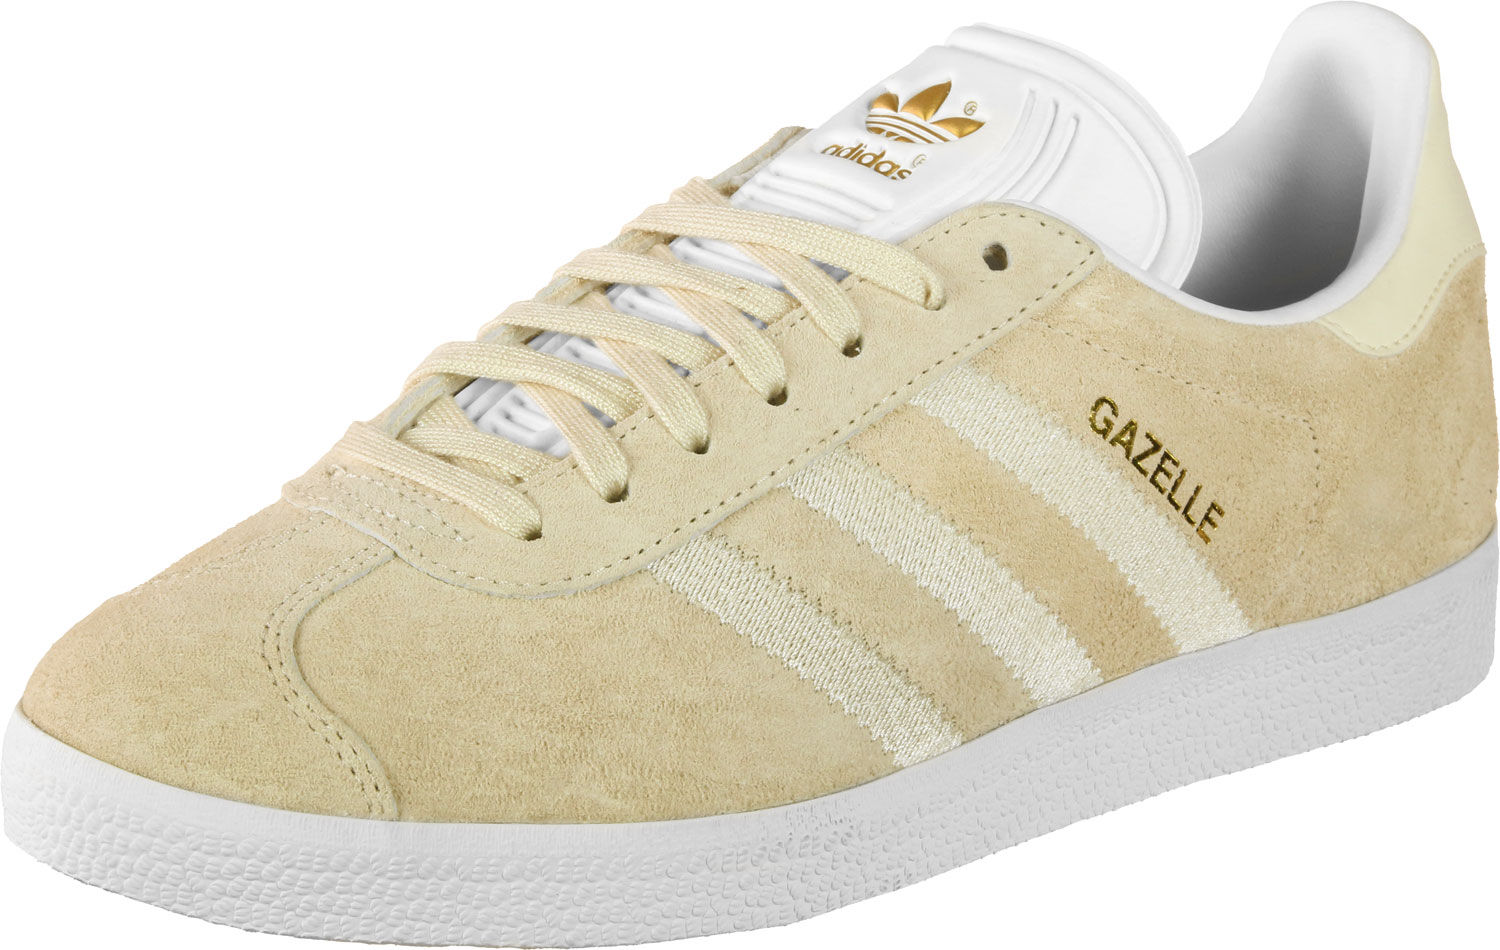 adidas Gazelle W - Sneakers Low at